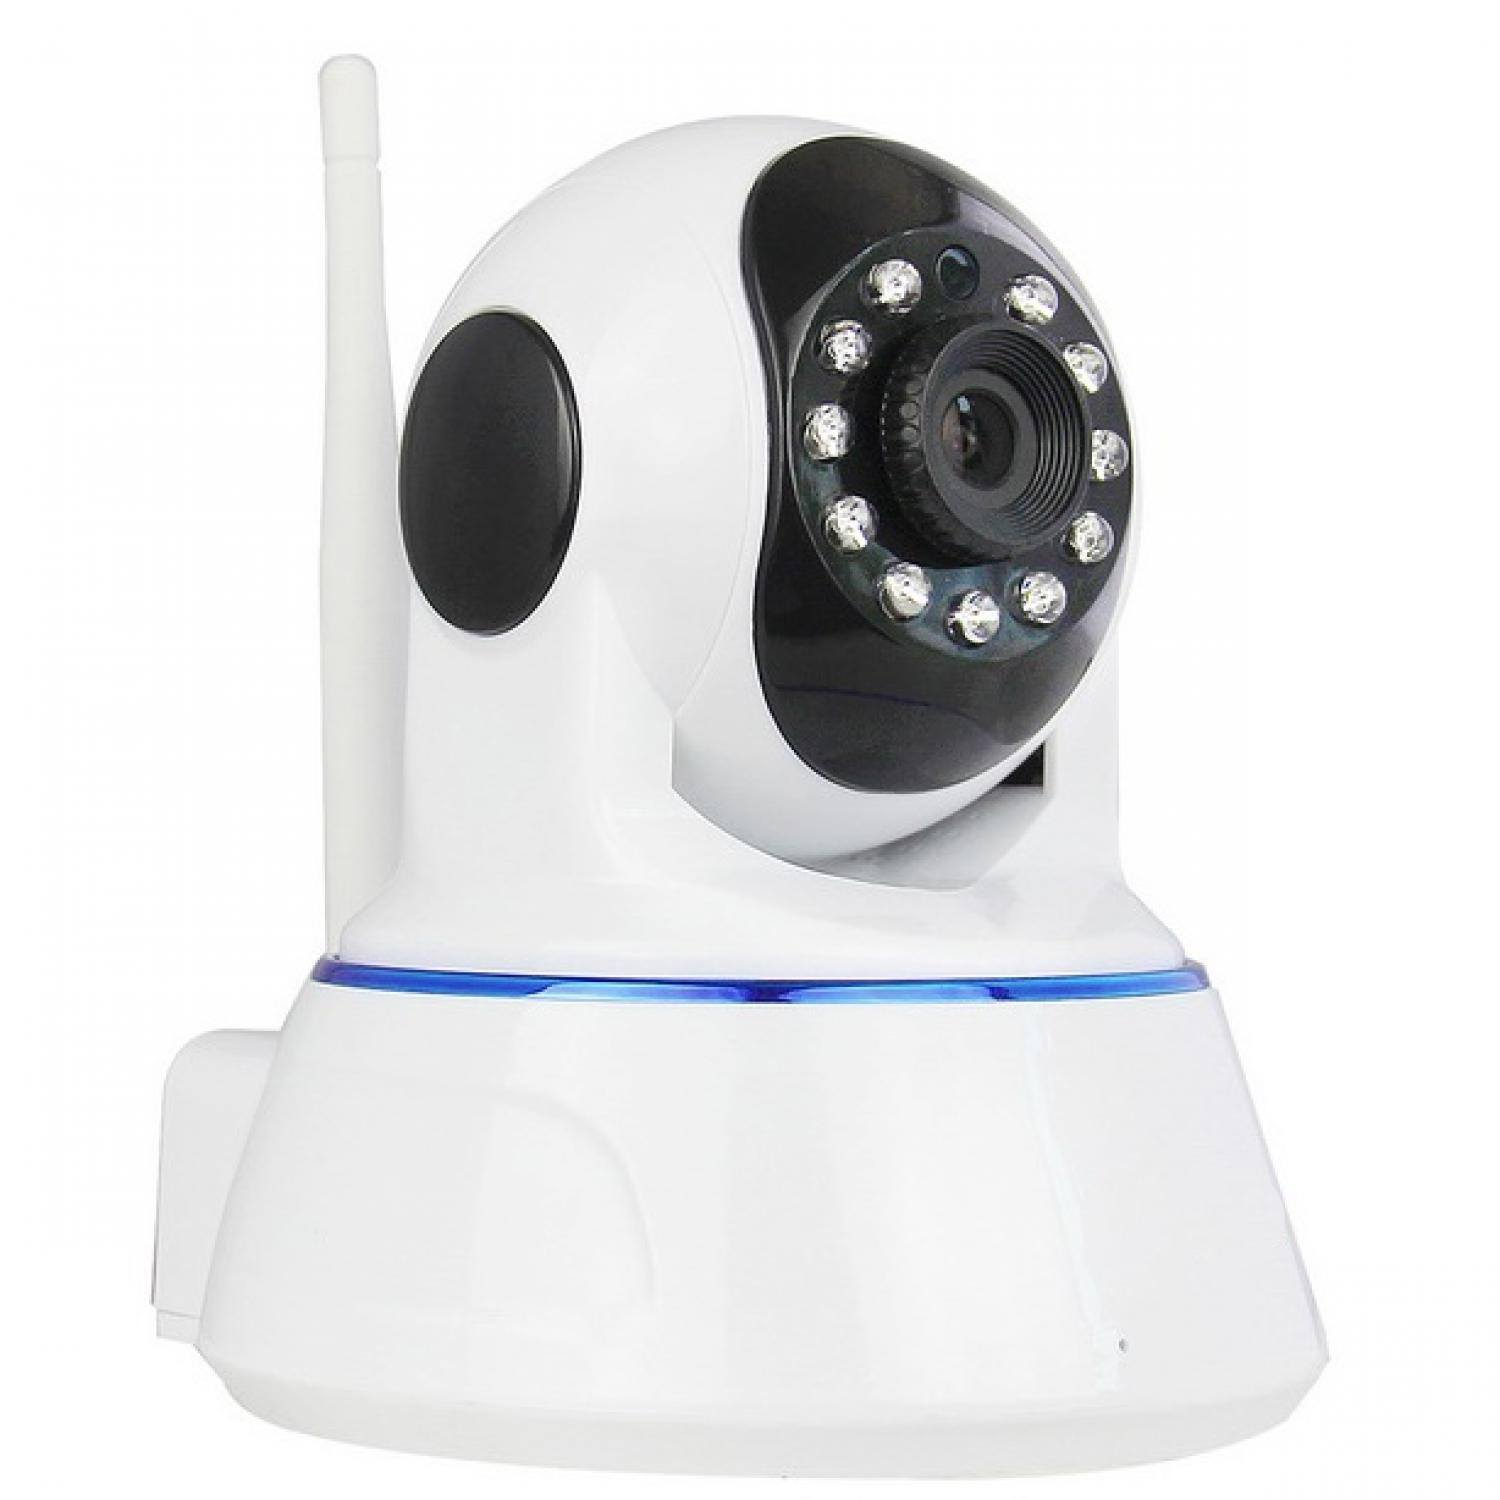 escam-qf002-wireless-ip-camera-cctv-14-inch-cmos-720p